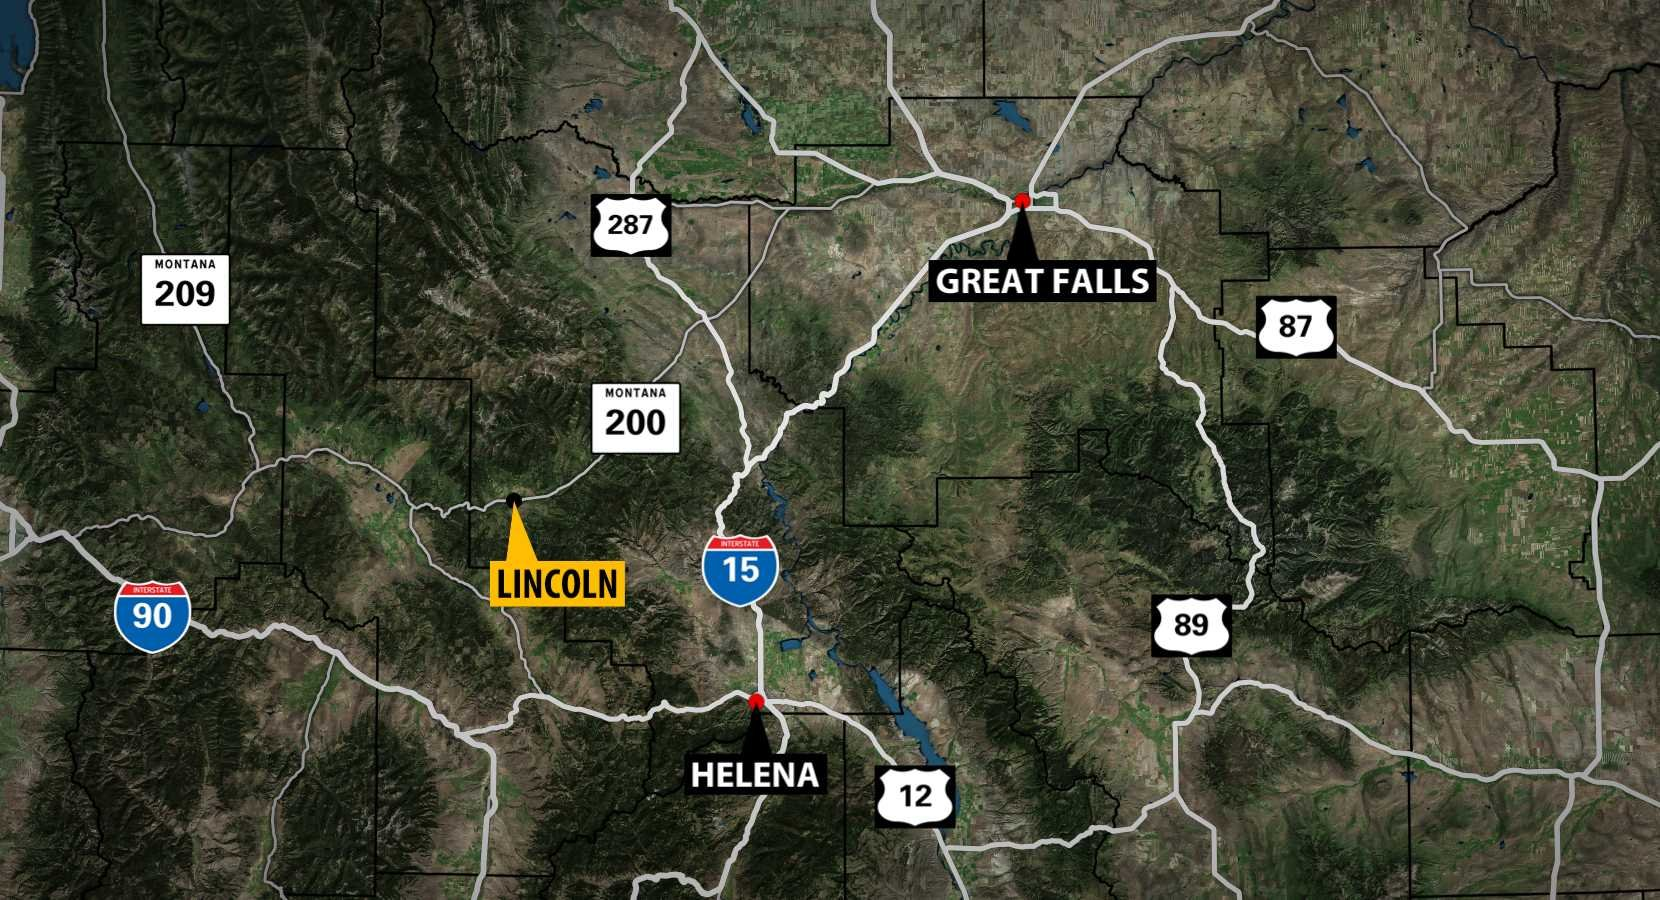 Several small wildfires have been reported near Lincoln